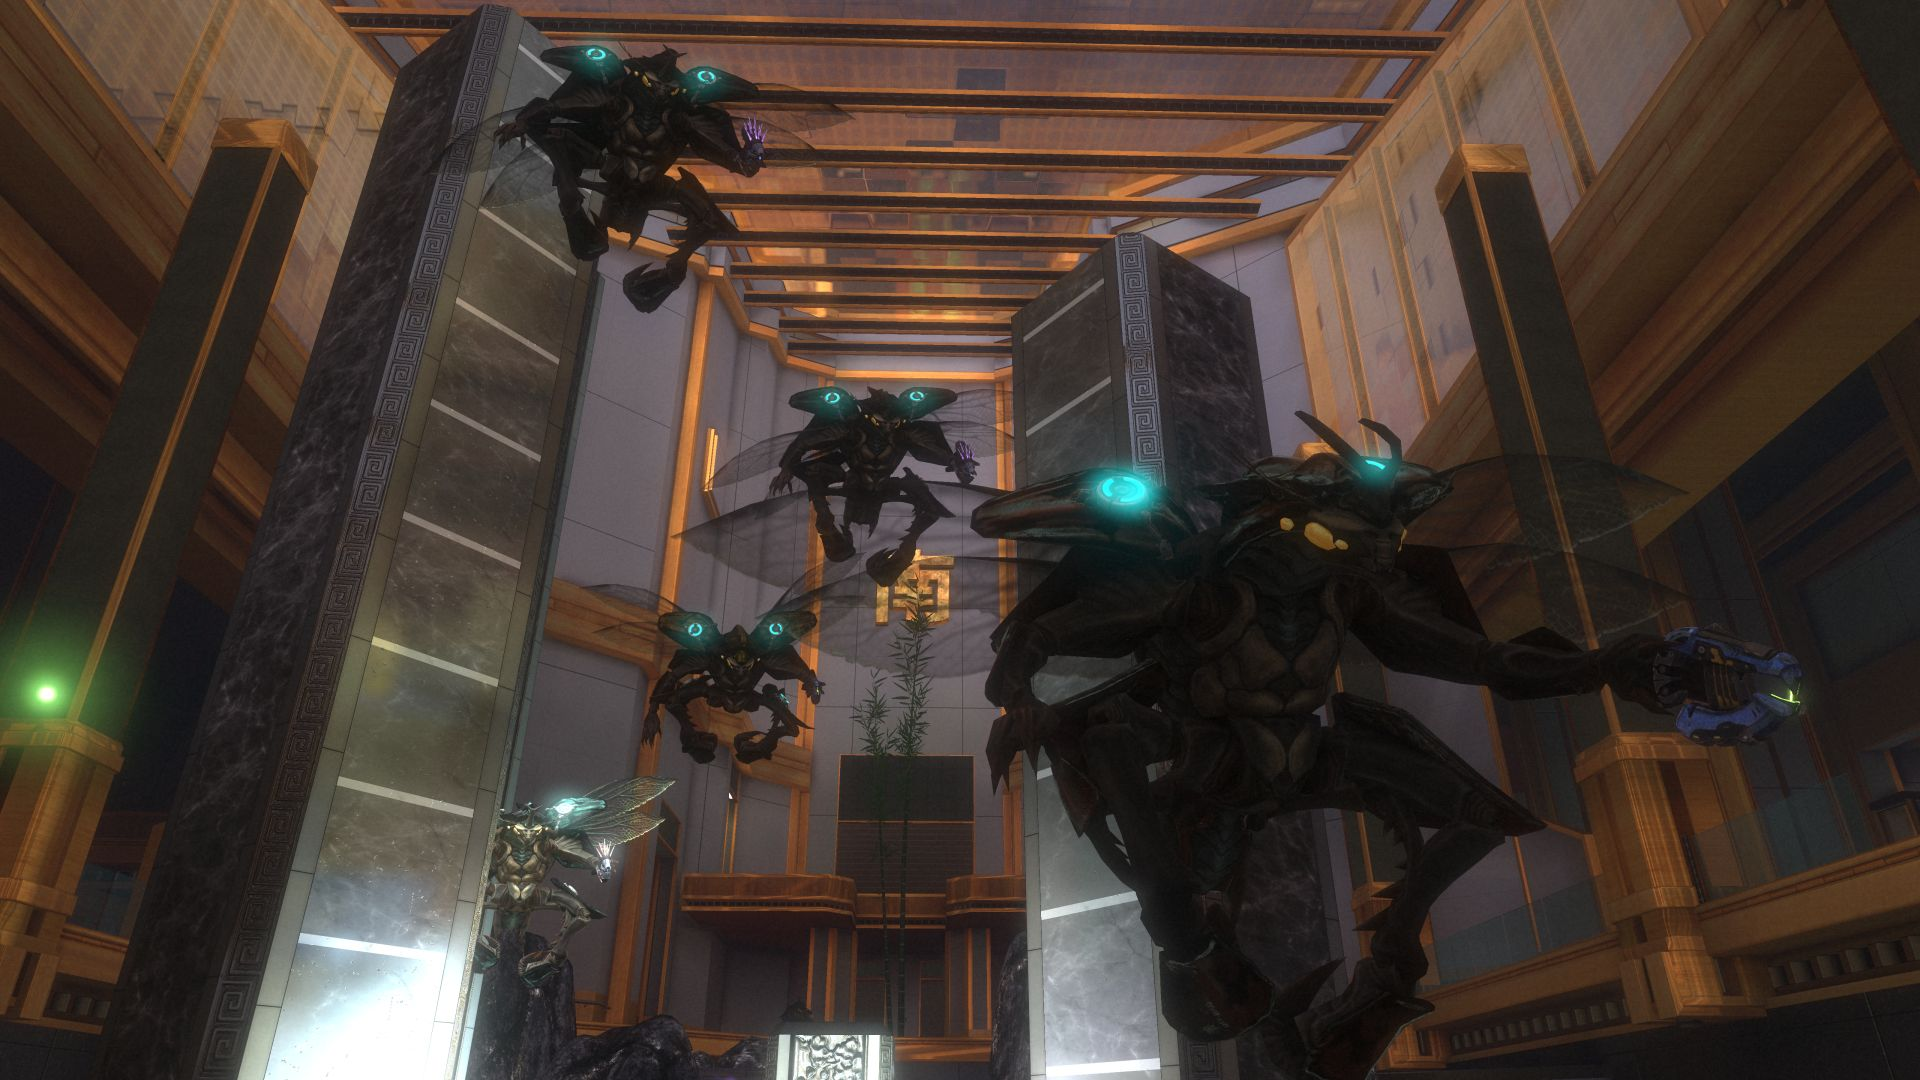 Halo reach firefight matchmaking alone